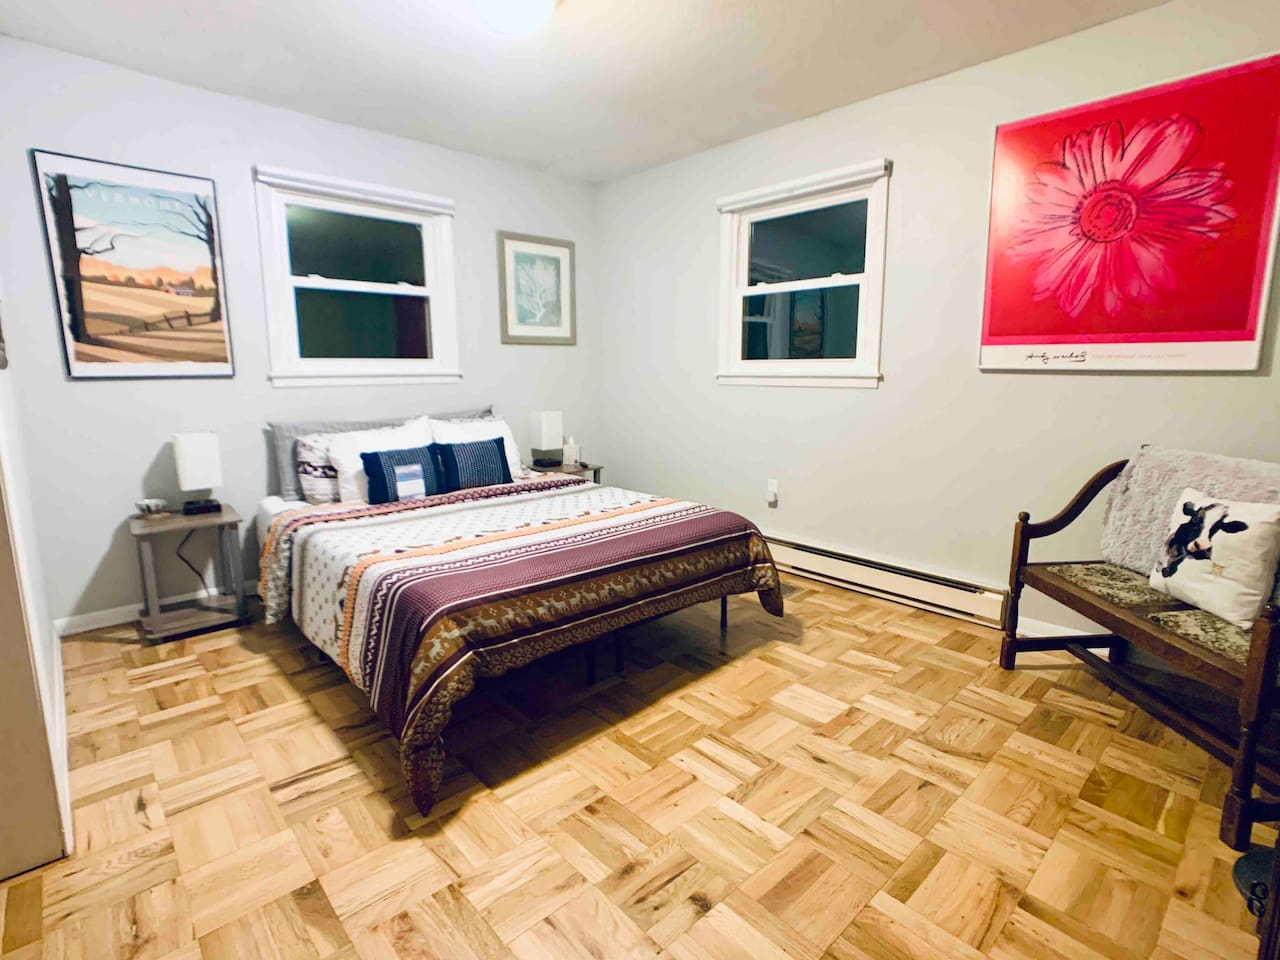 Comfy queen-sized memory foam bed. Each guest room has it's own smart TV hooked up to stream Netflix! Towels, washcloths and all essentials are provided for your stay!